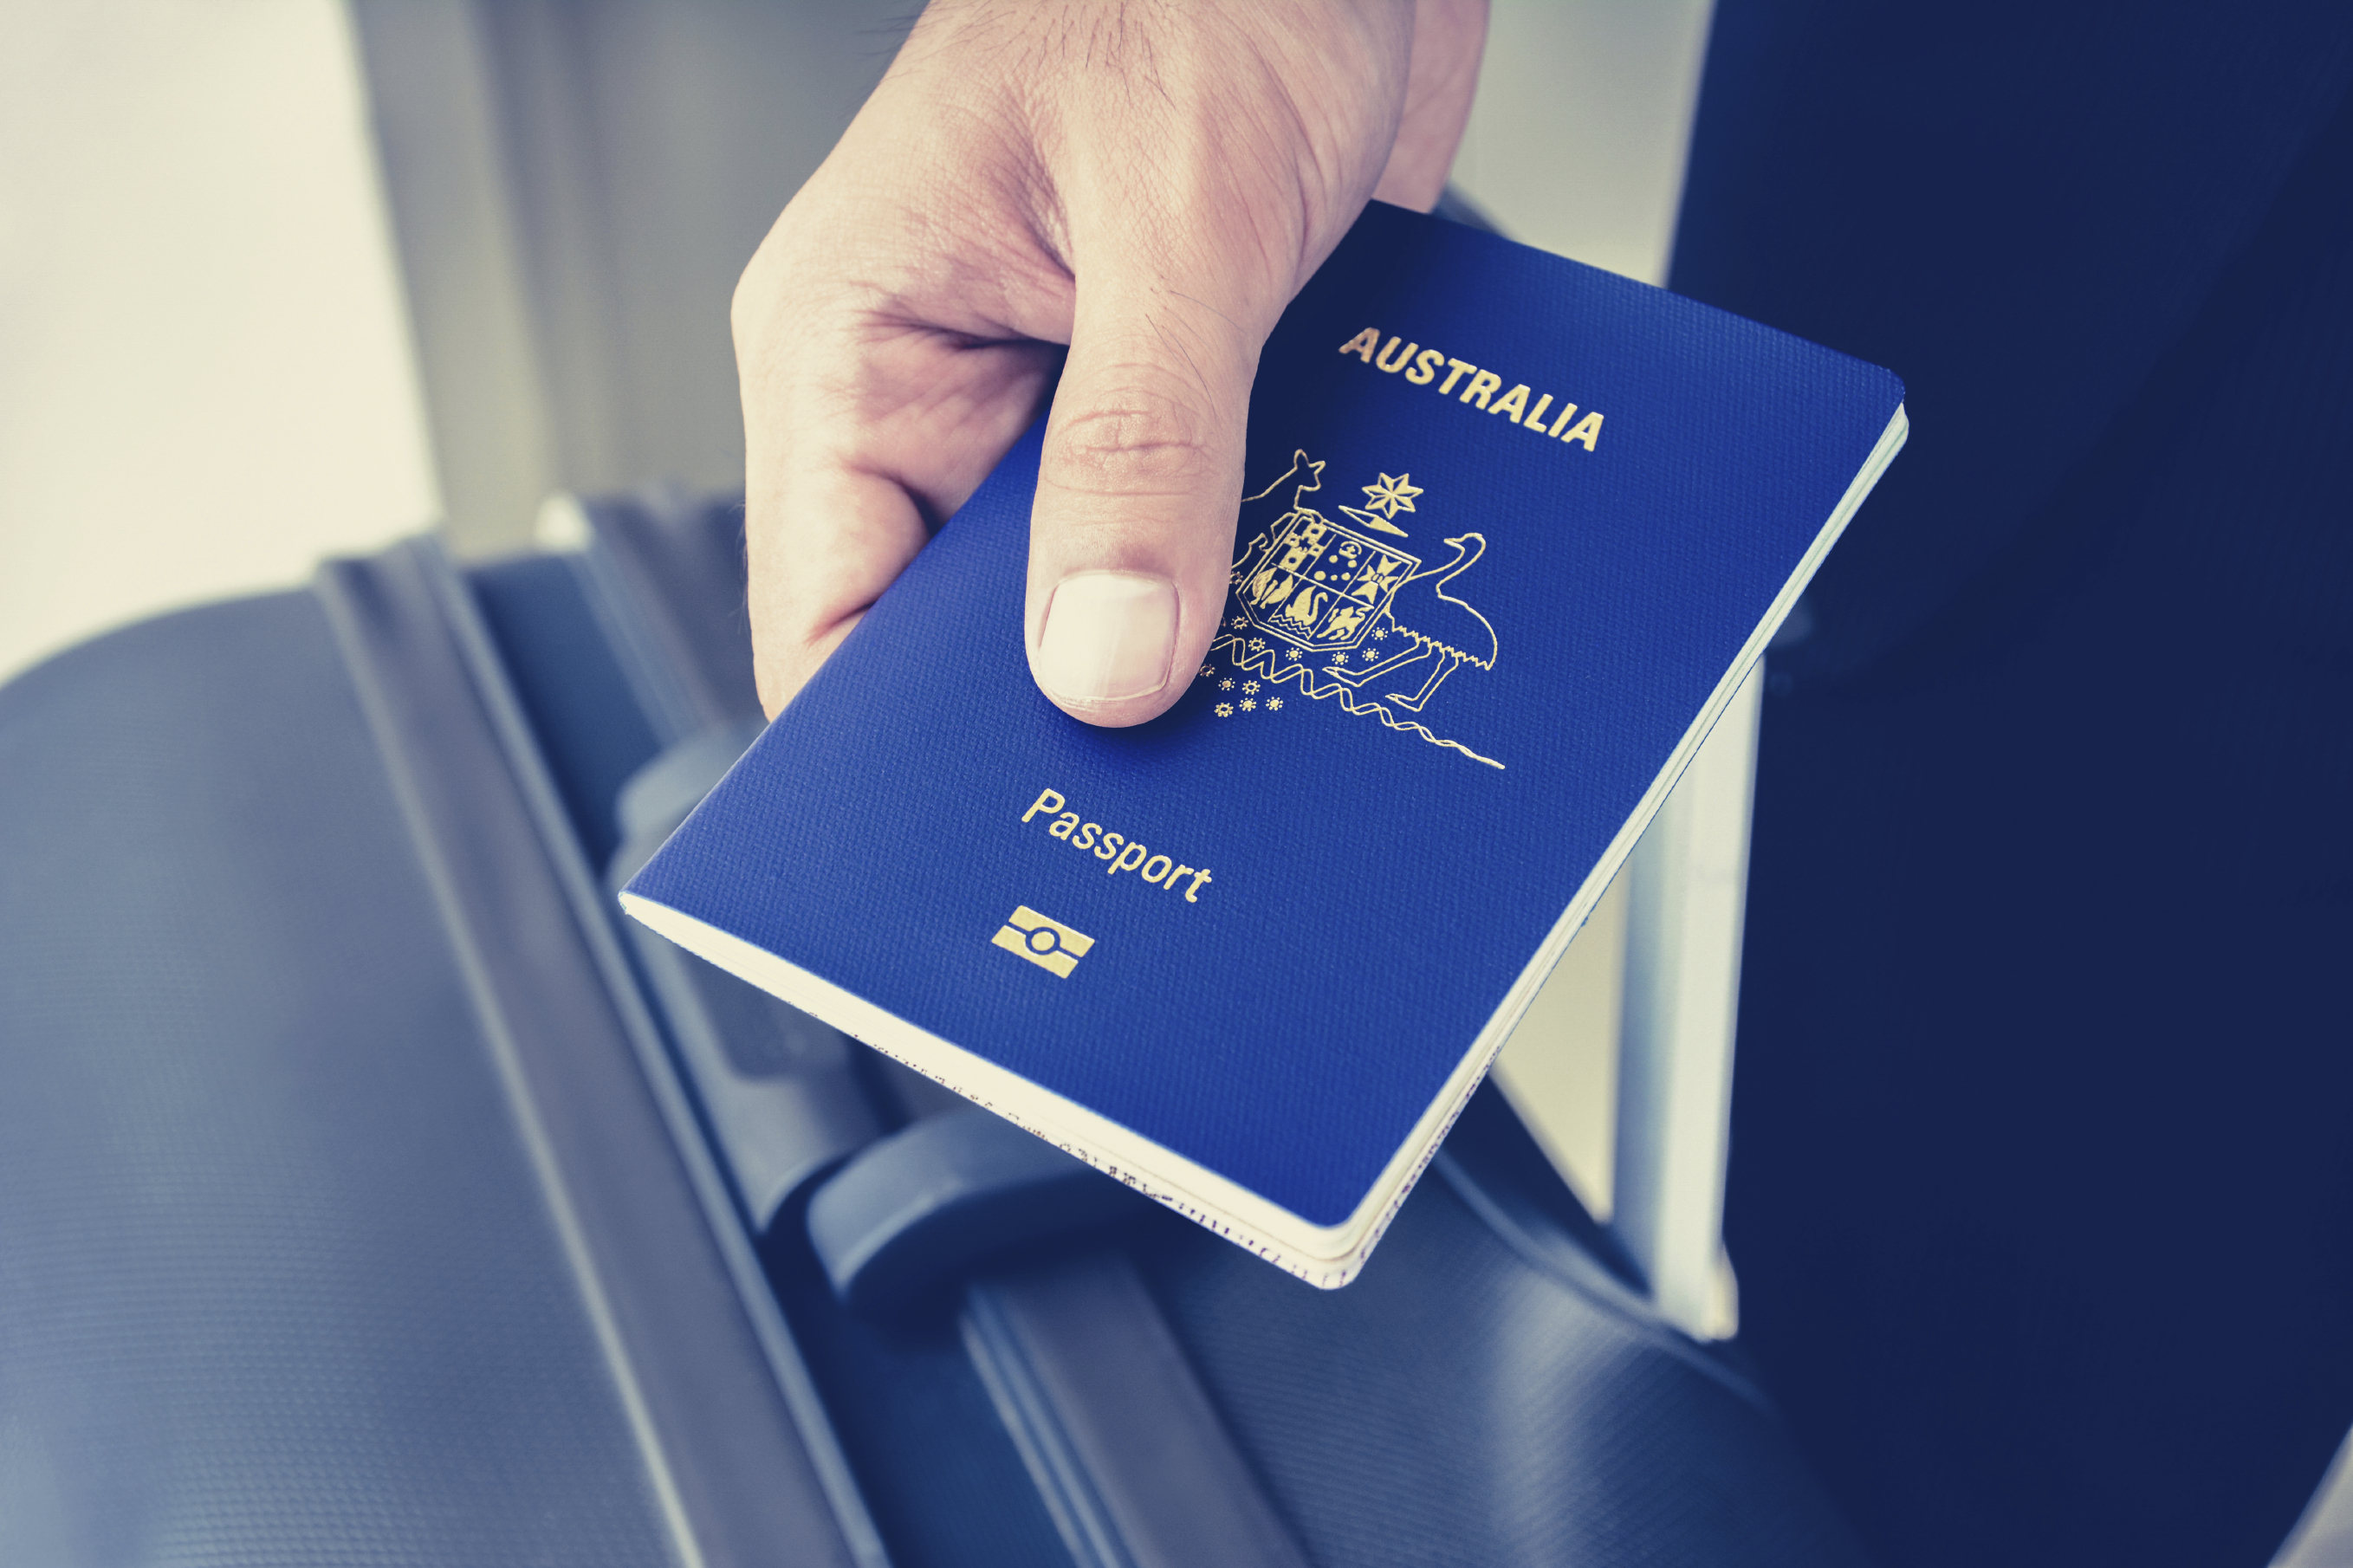 Image Of A Hand Holding An Australian Passport How To Apply